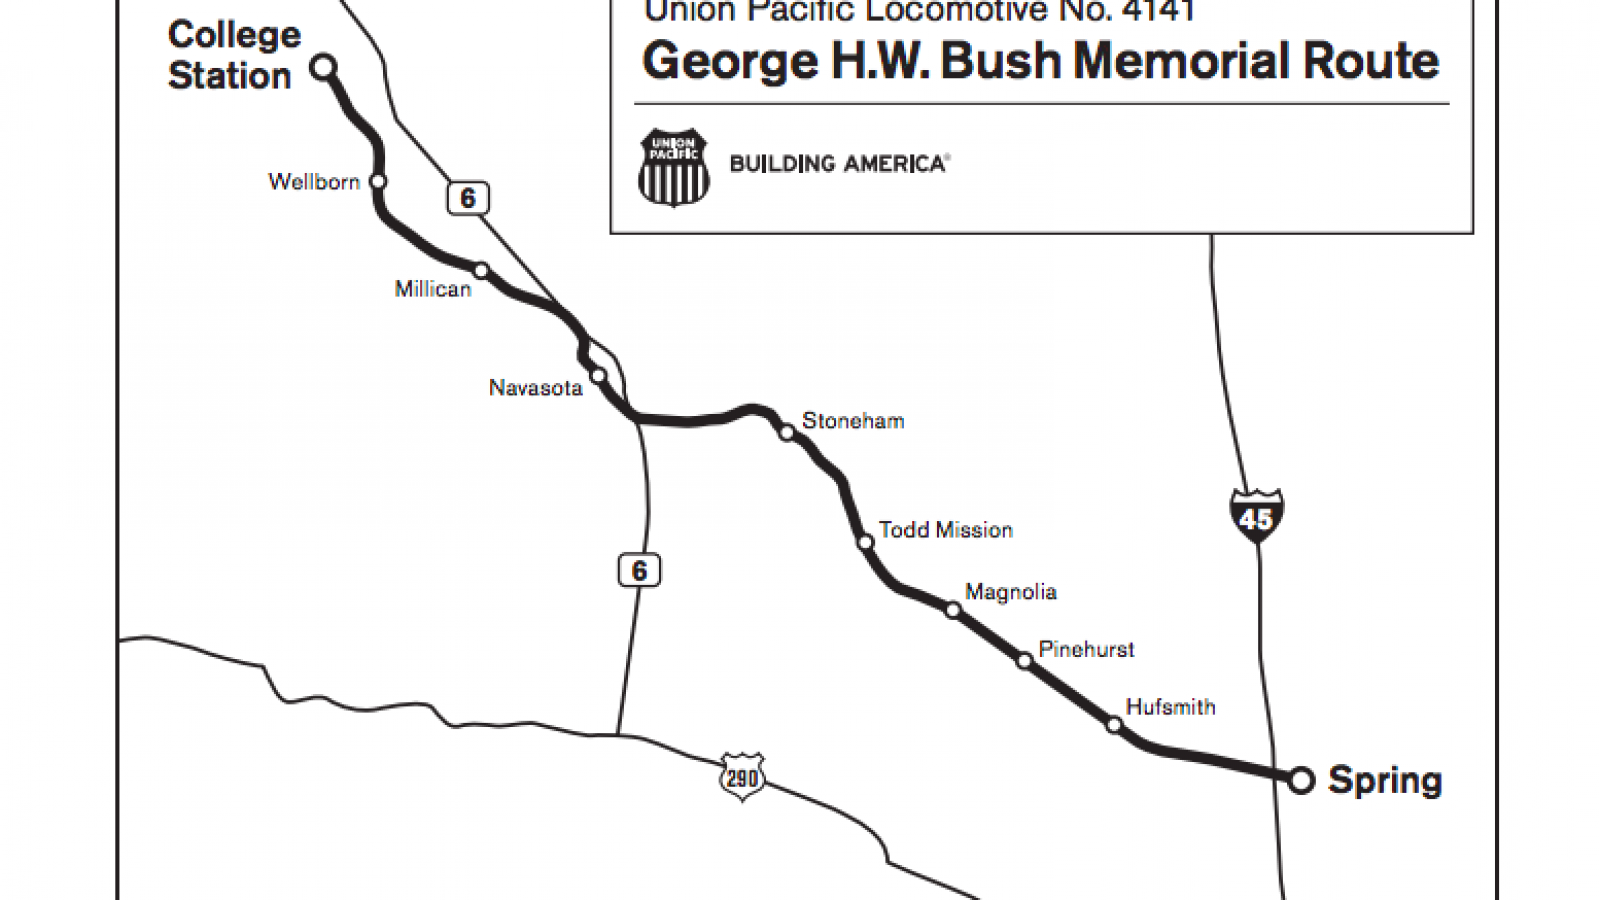 George H.W. Bush Train: Houston Funeral, Route, Map, Time, Plans to on sports authority field at mile high map, parkview field map, kyle zoning map, progressive field map, fedex field map, cashman field map, lp field map, ford center map, faurot field map, hometown kyle map, coca-cola field map, centurylink field map, lincoln financial field map, tropicana field map, u.s. cellular field map, durham bulls athletic park map, soldier field map, target field map, victory field map,